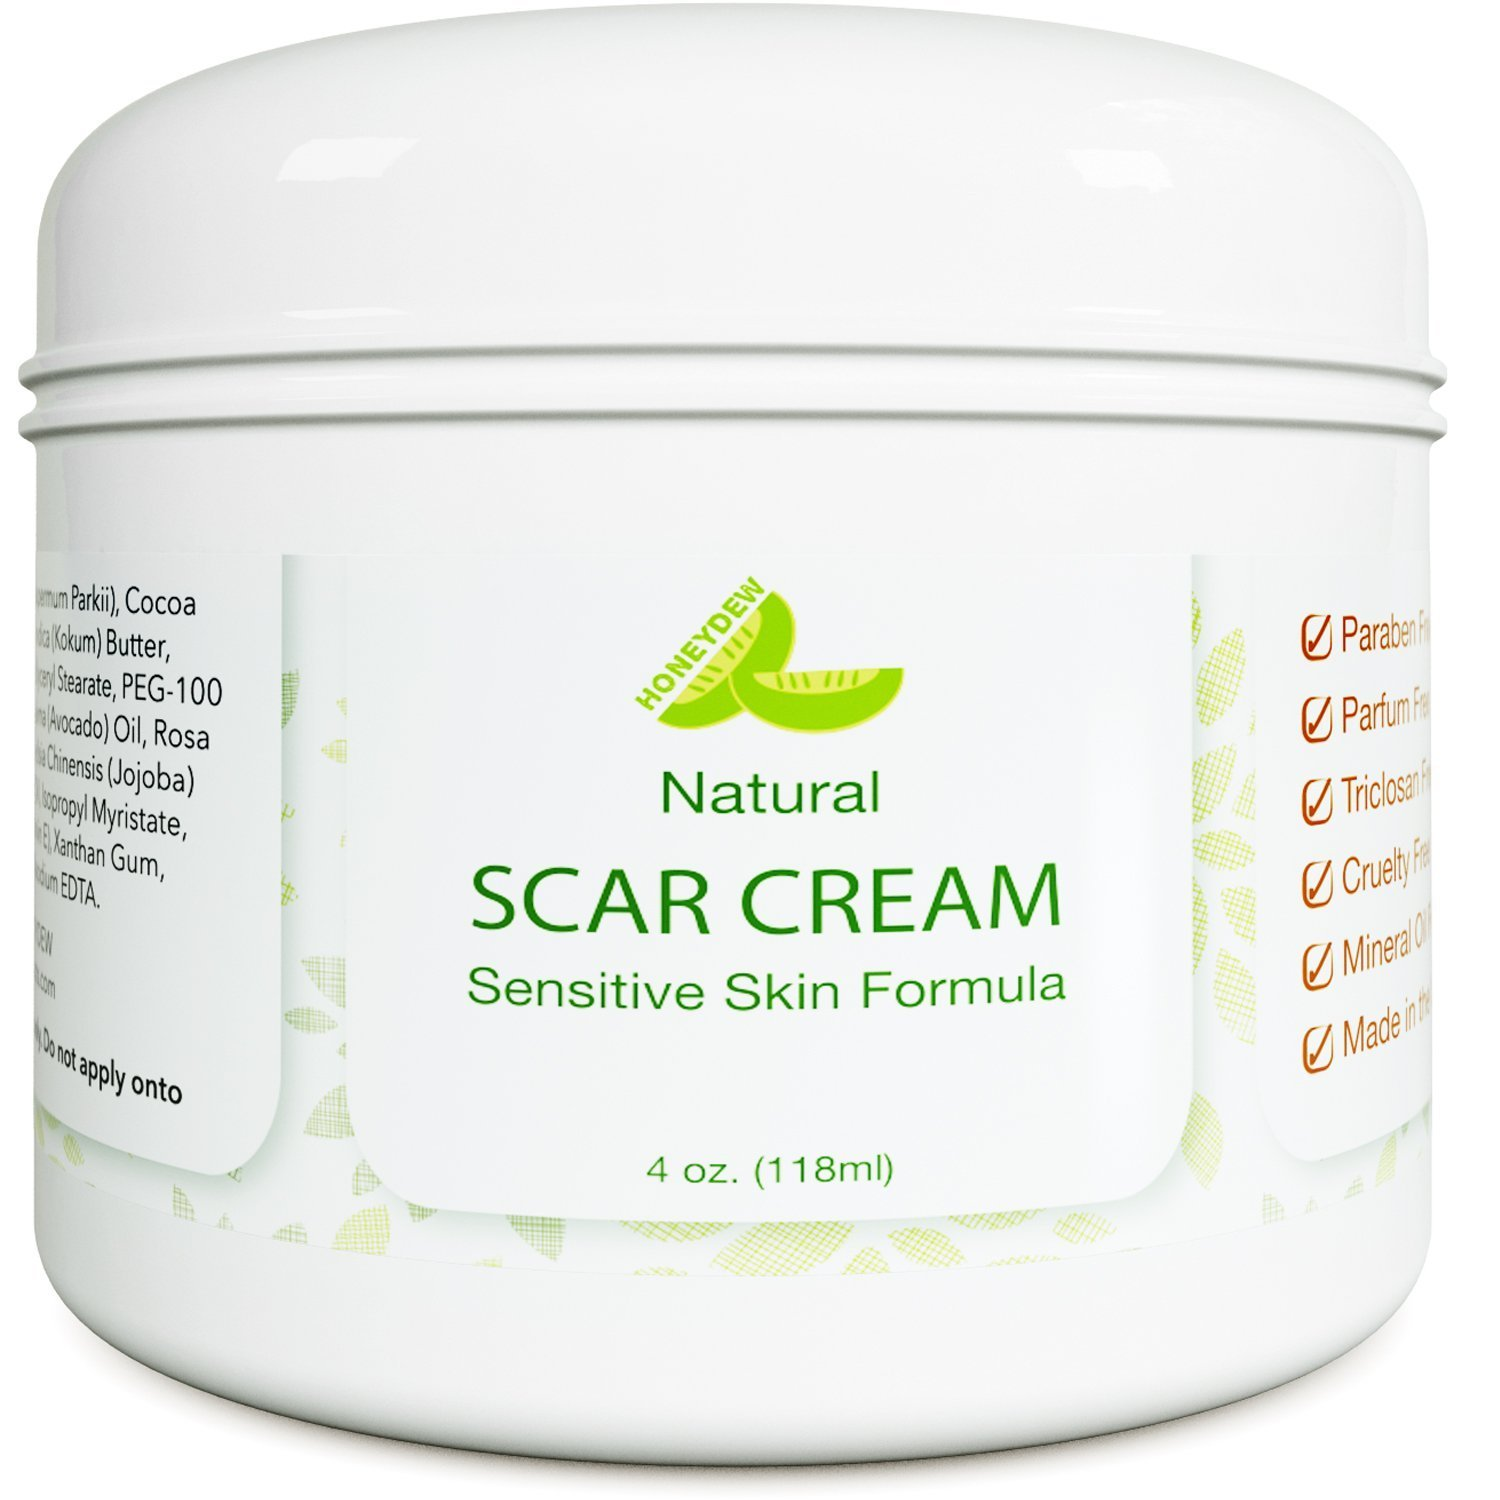 Top 10 Best Lotion For Scars In 2020 The Double Check